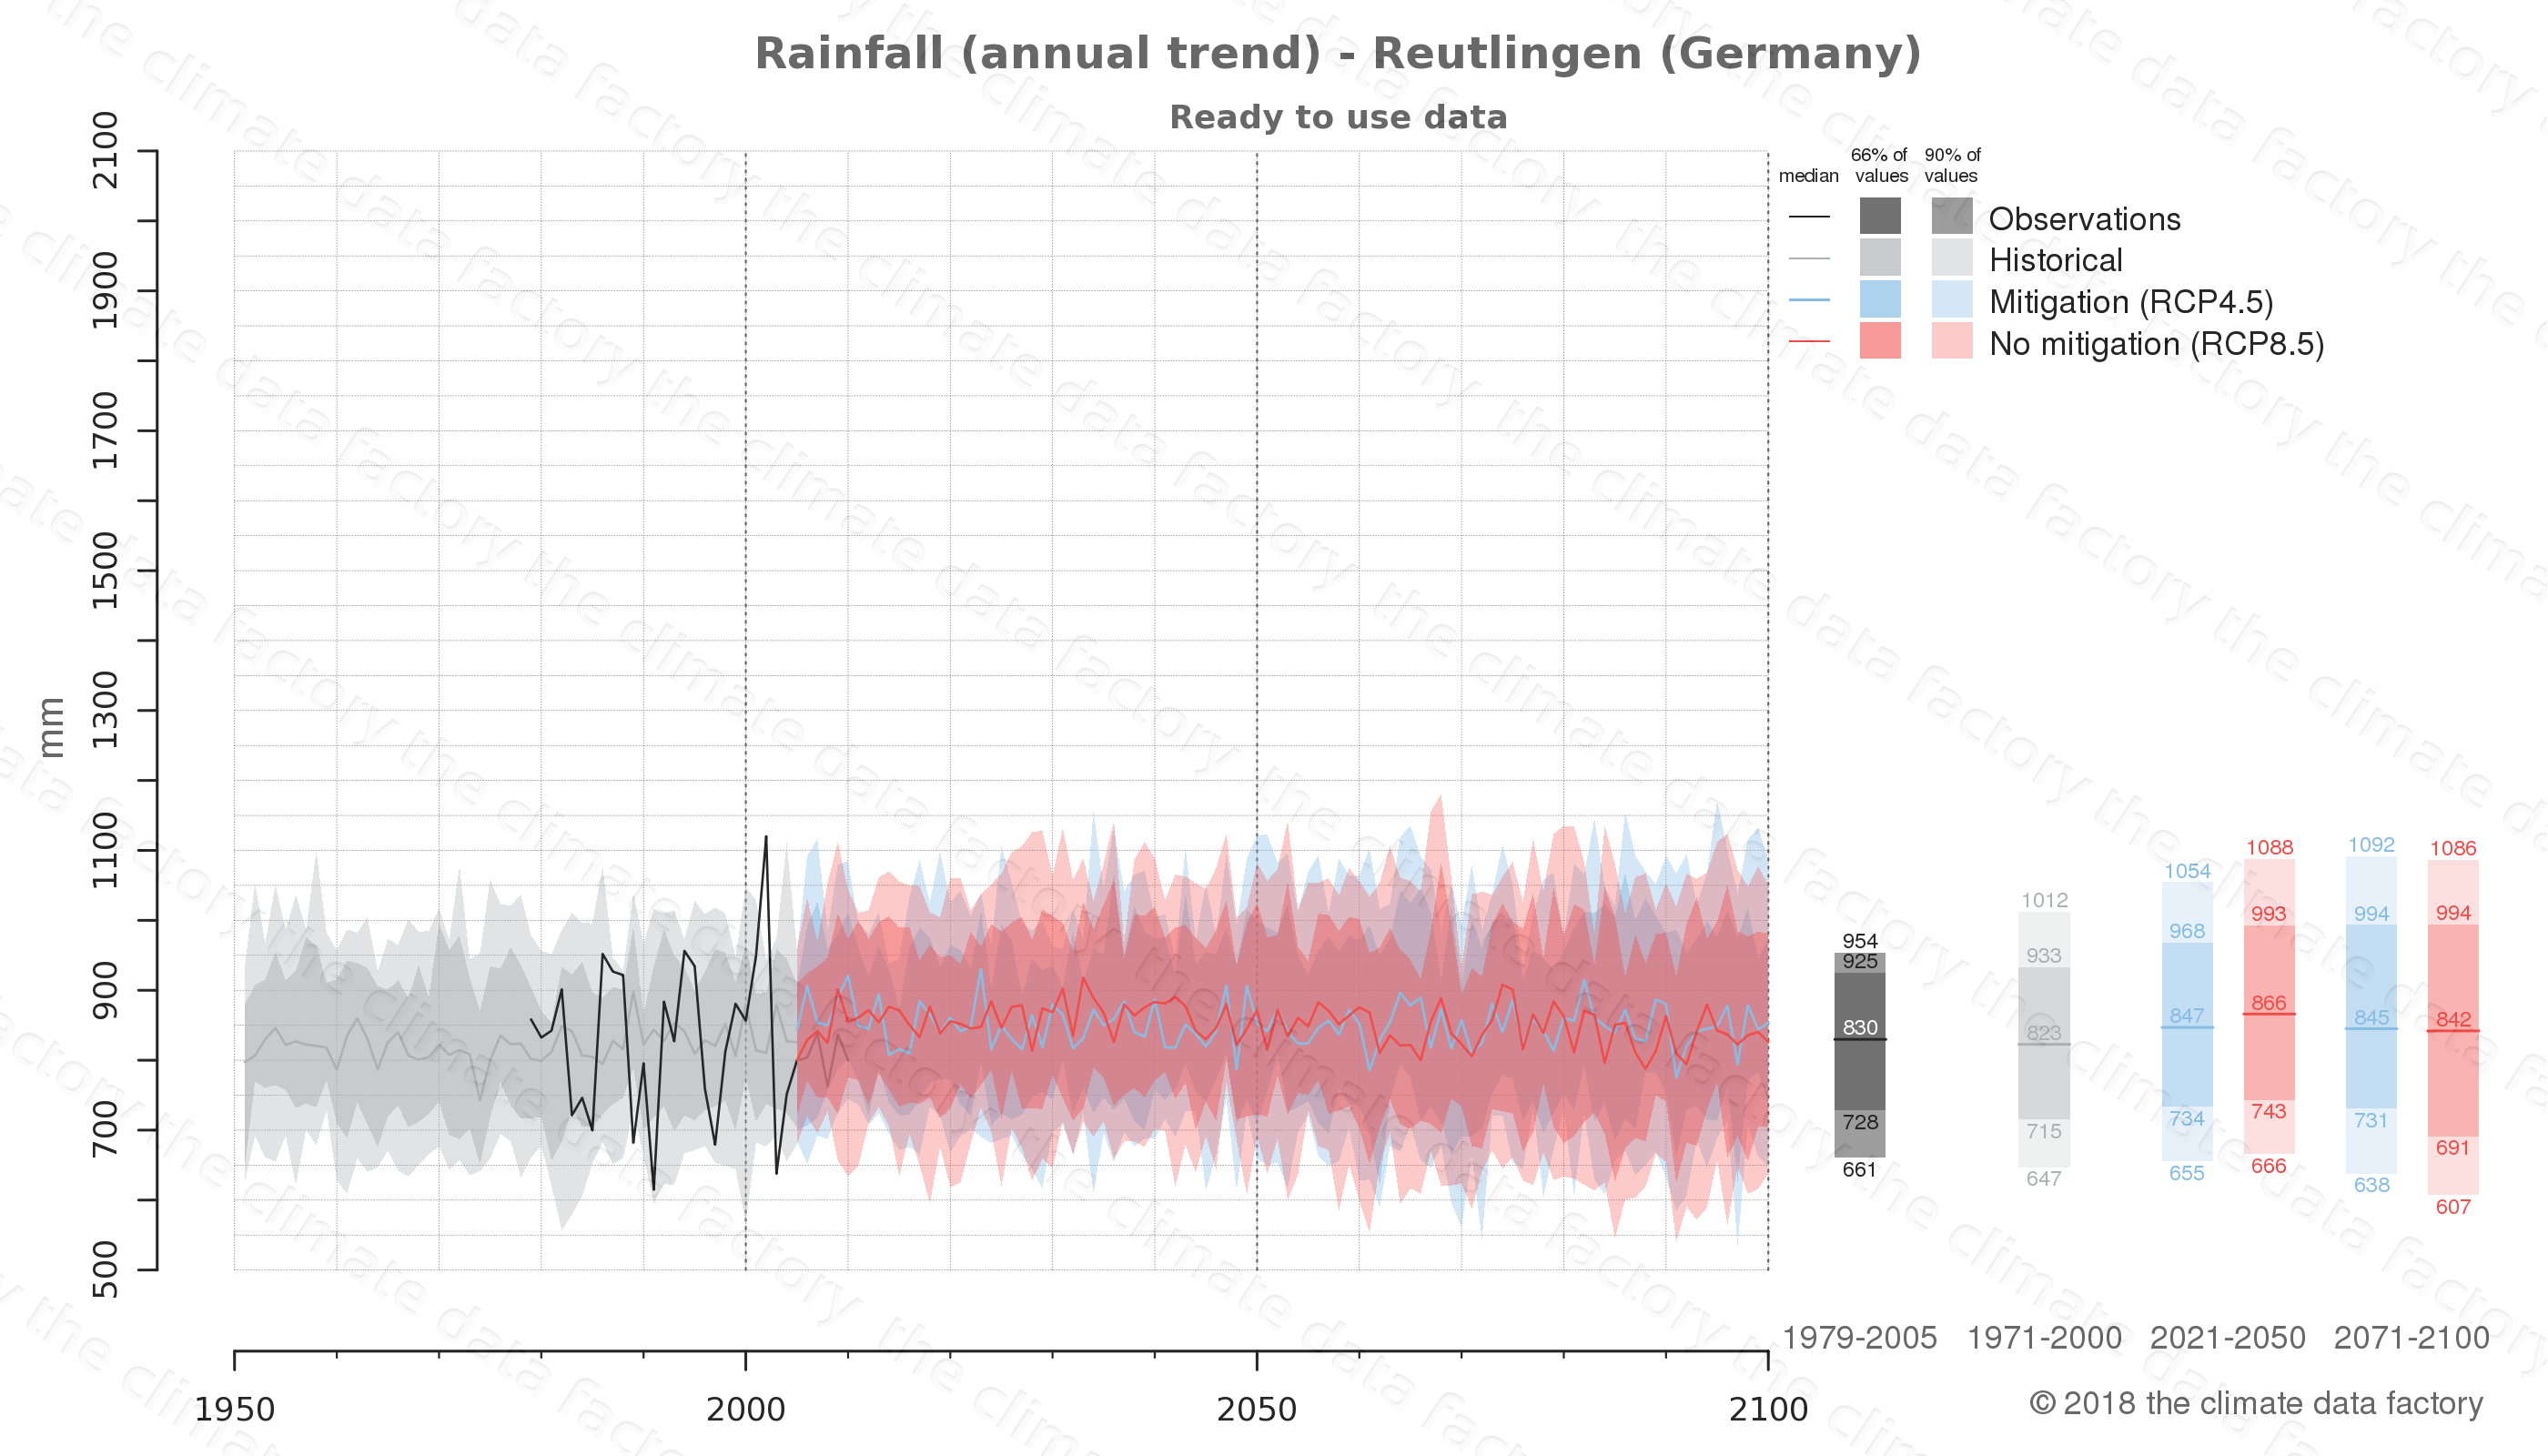 climate change data policy adaptation climate graph city data rainfall reutlingen germany